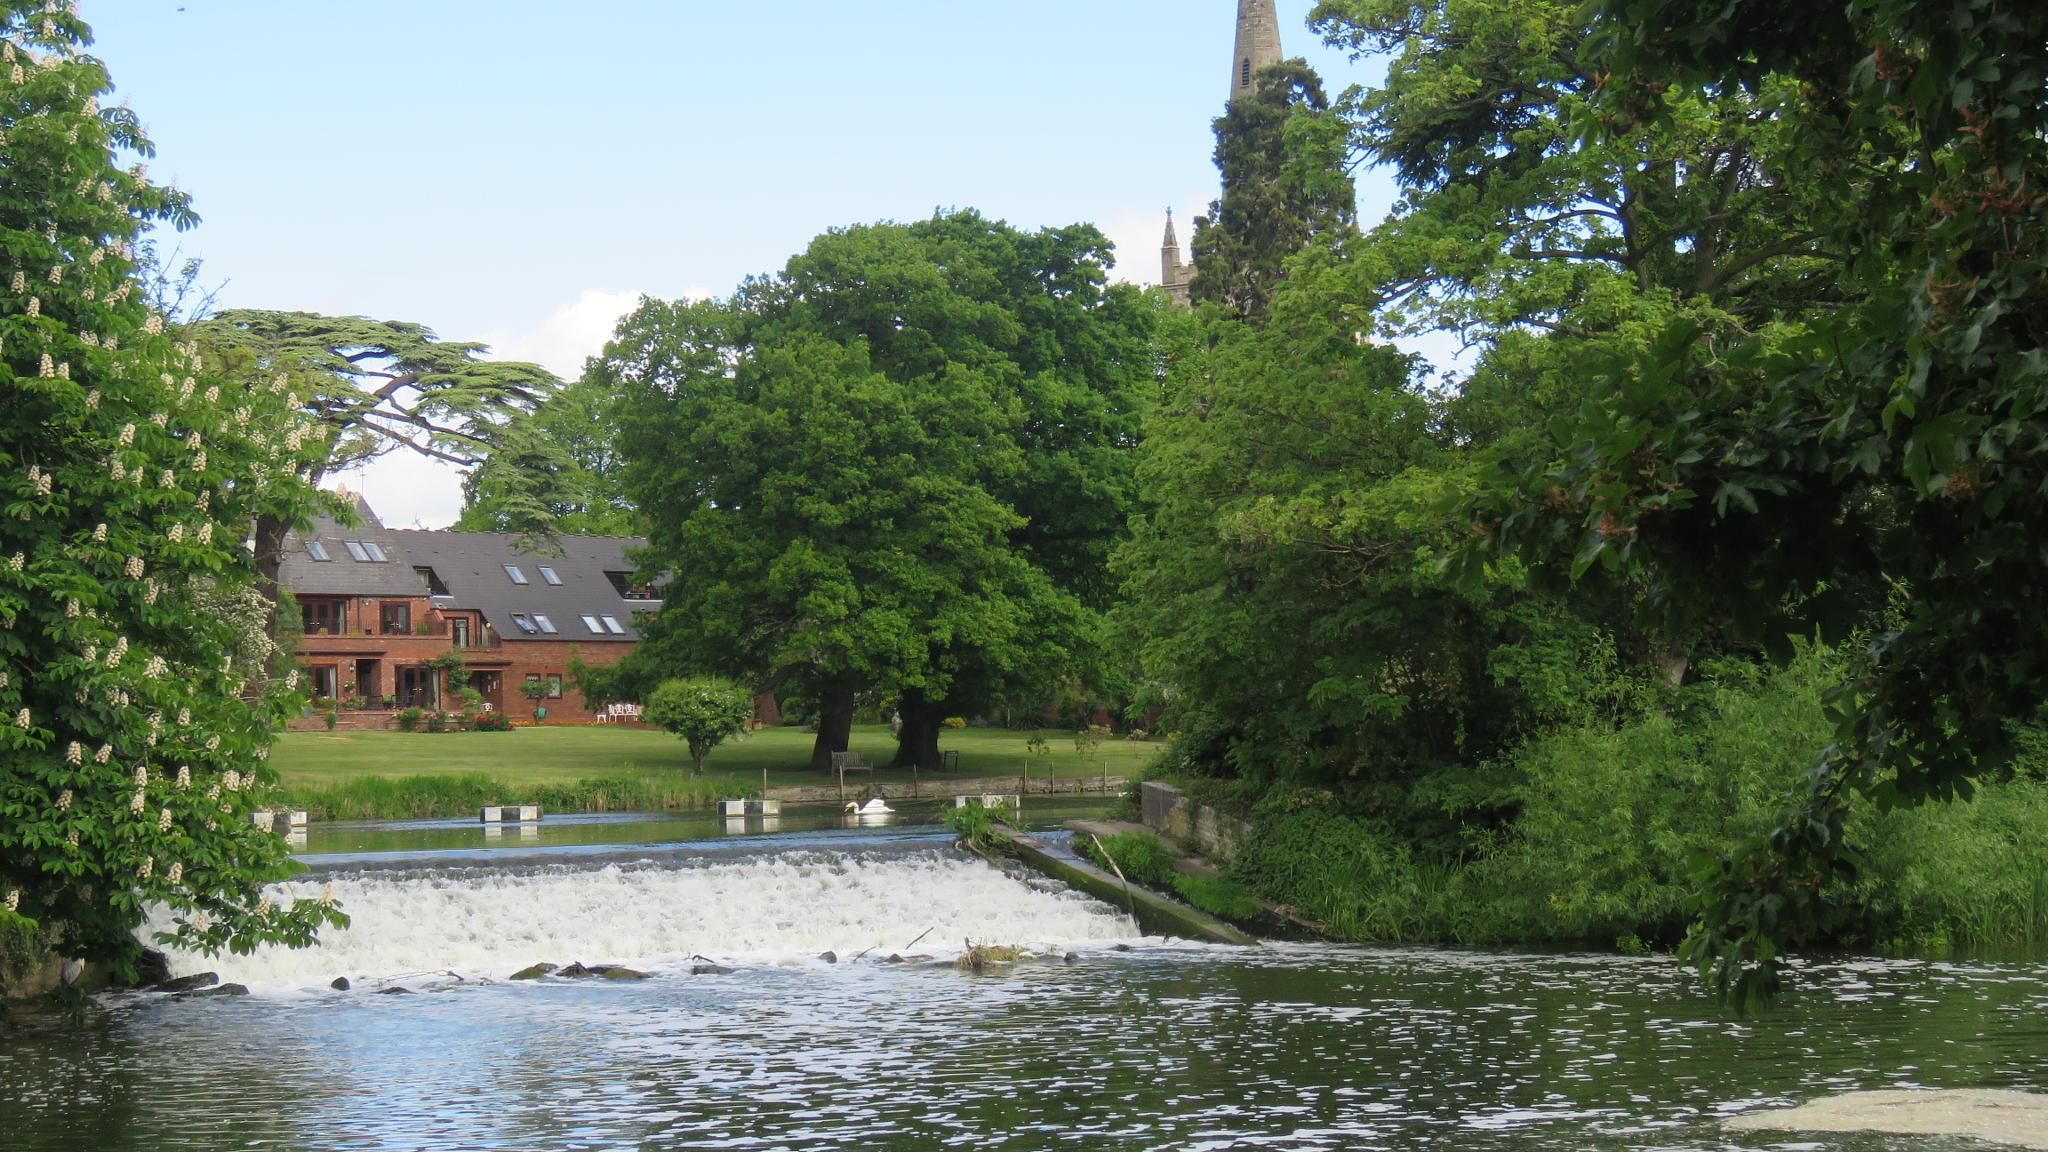 Weir at Stratford upon Avon  by Nige Photography